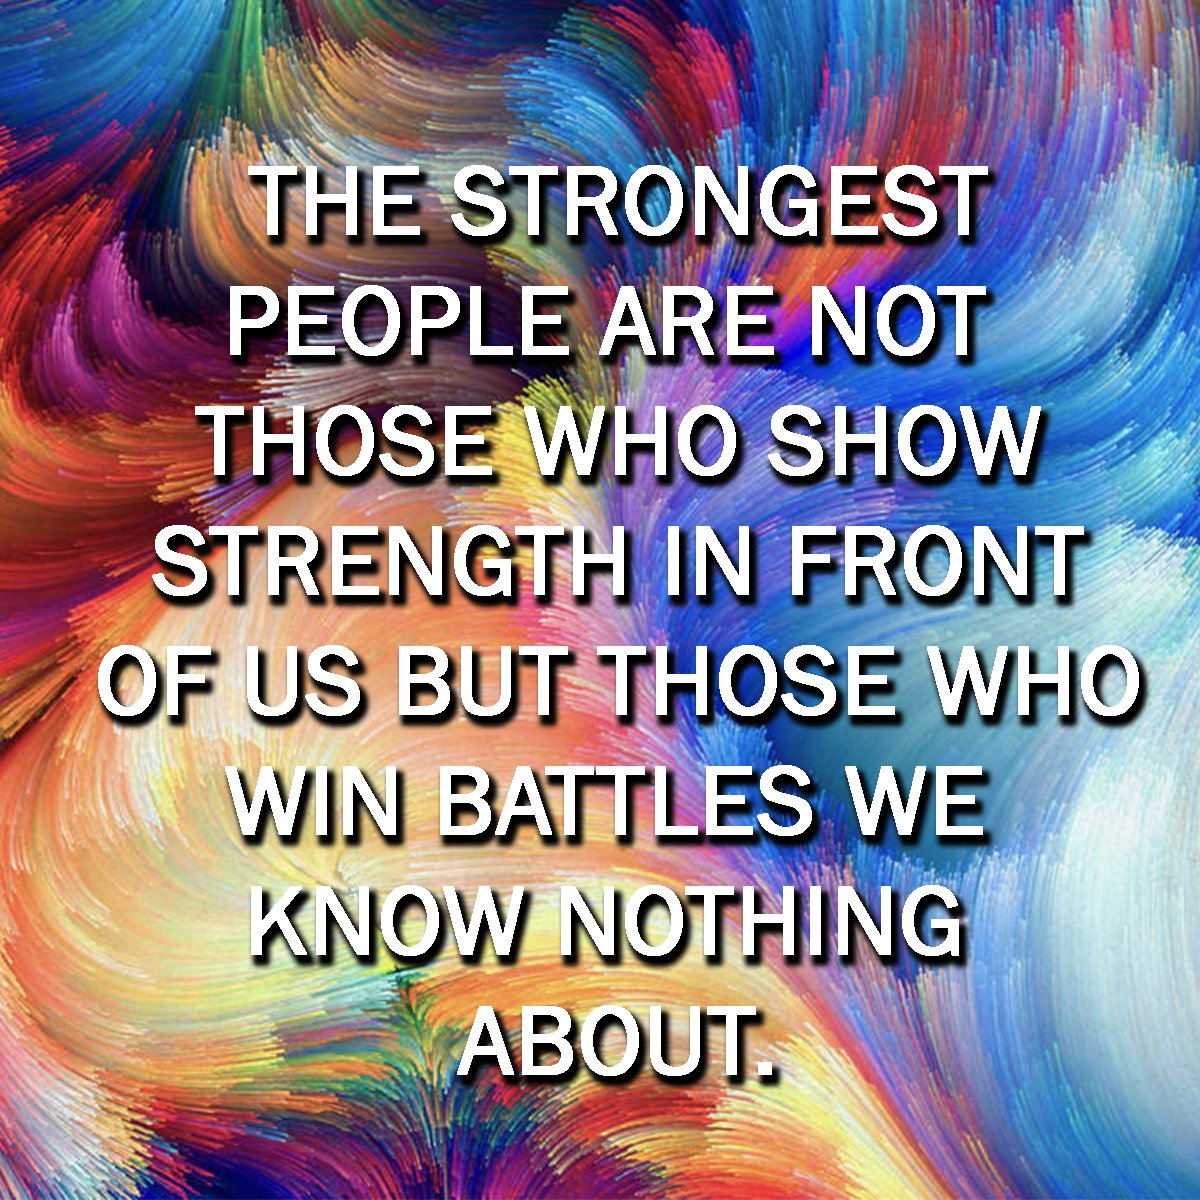 The strongest people are not those who show strength in front of us but those who win battles we know nothing about.  #sundayshare #quotes<br>http://pic.twitter.com/YMaAqJ6a6G